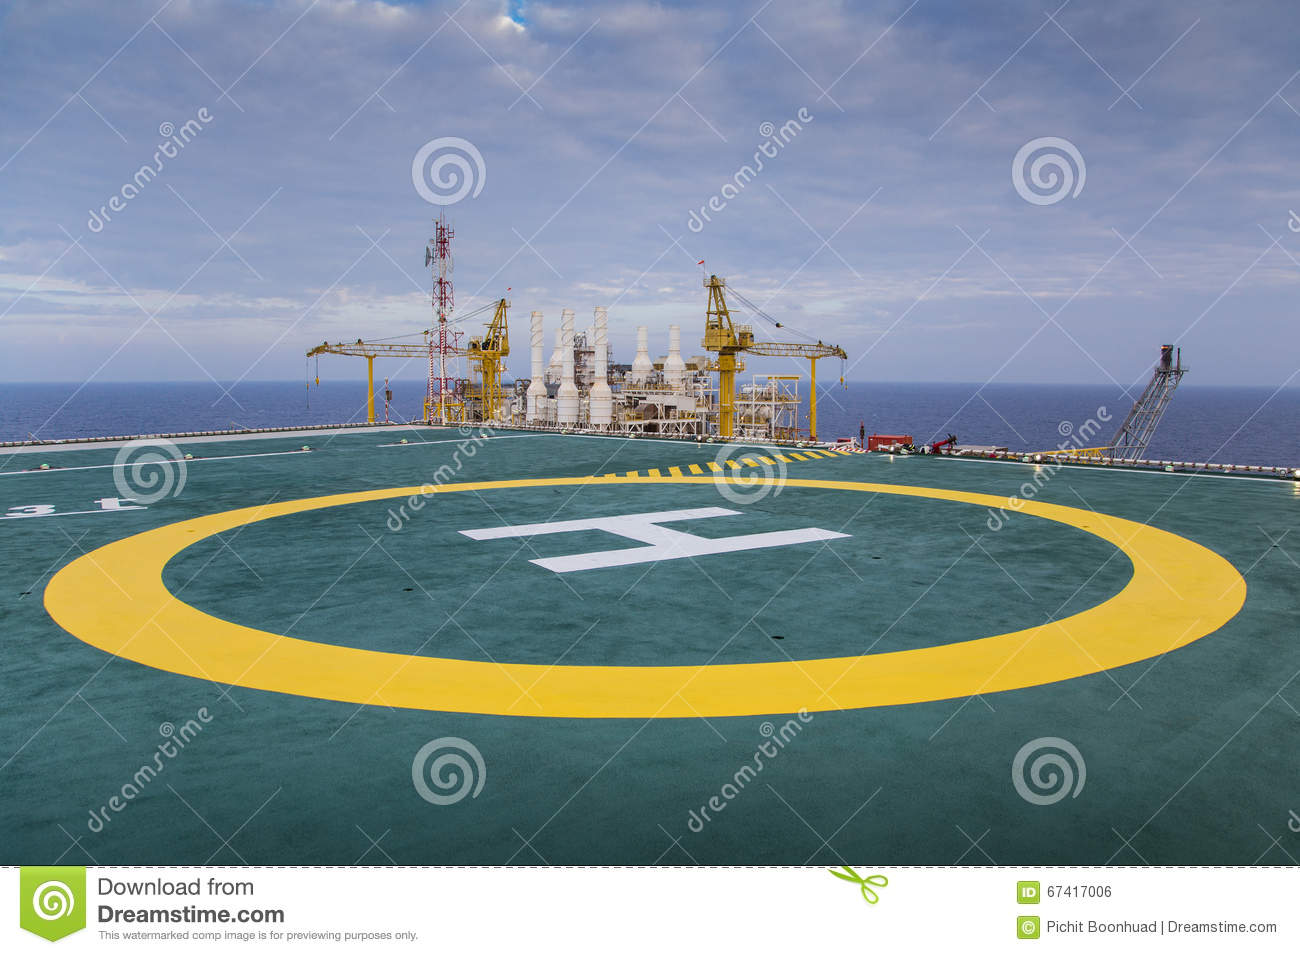 heli landing pad with Stock Photo Helicopter Pad Landing Oil Gas Platform Top Ac Modation Deck Receive Passenger Image67417006 on Part3 Standards 325 325 160 further 2879275 also Heliport Design besides Ch13 likewise Stock Photo Helicopter Pad Landing Oil Gas Platform Top Ac modation Deck Receive Passenger Image67417006.